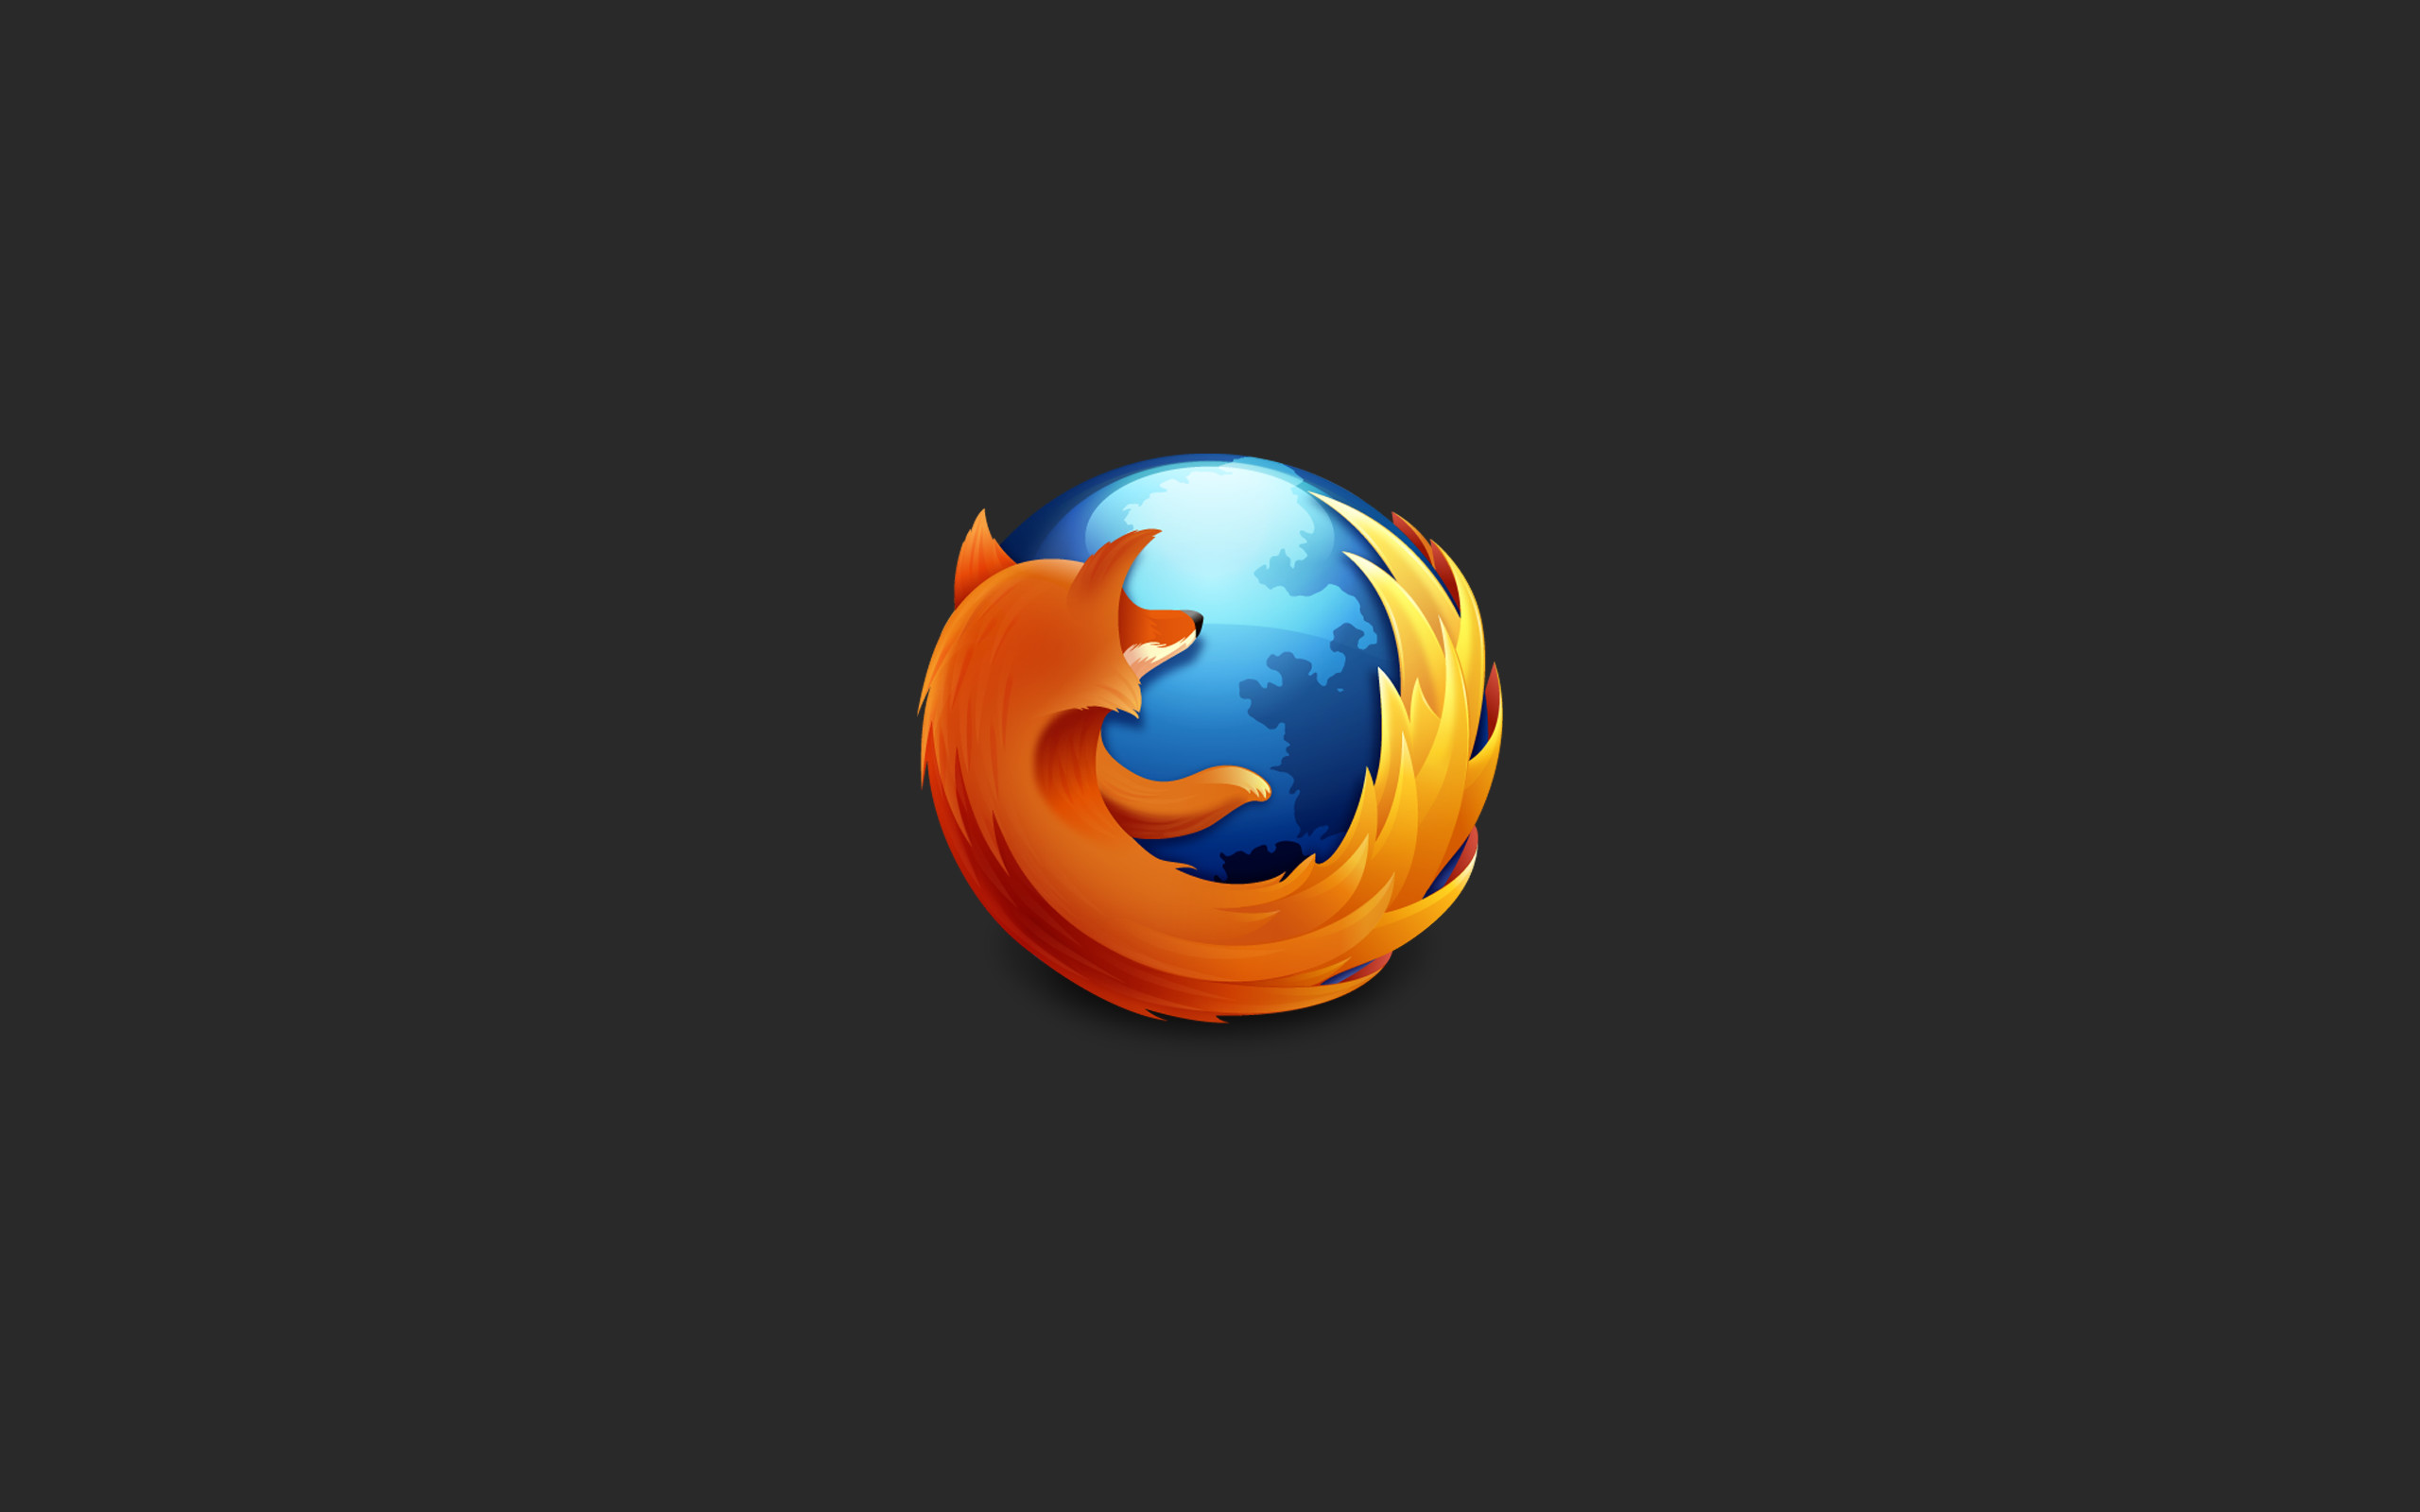 Firefox browser backgrounds wallpapertag - How to change firefox background image ...